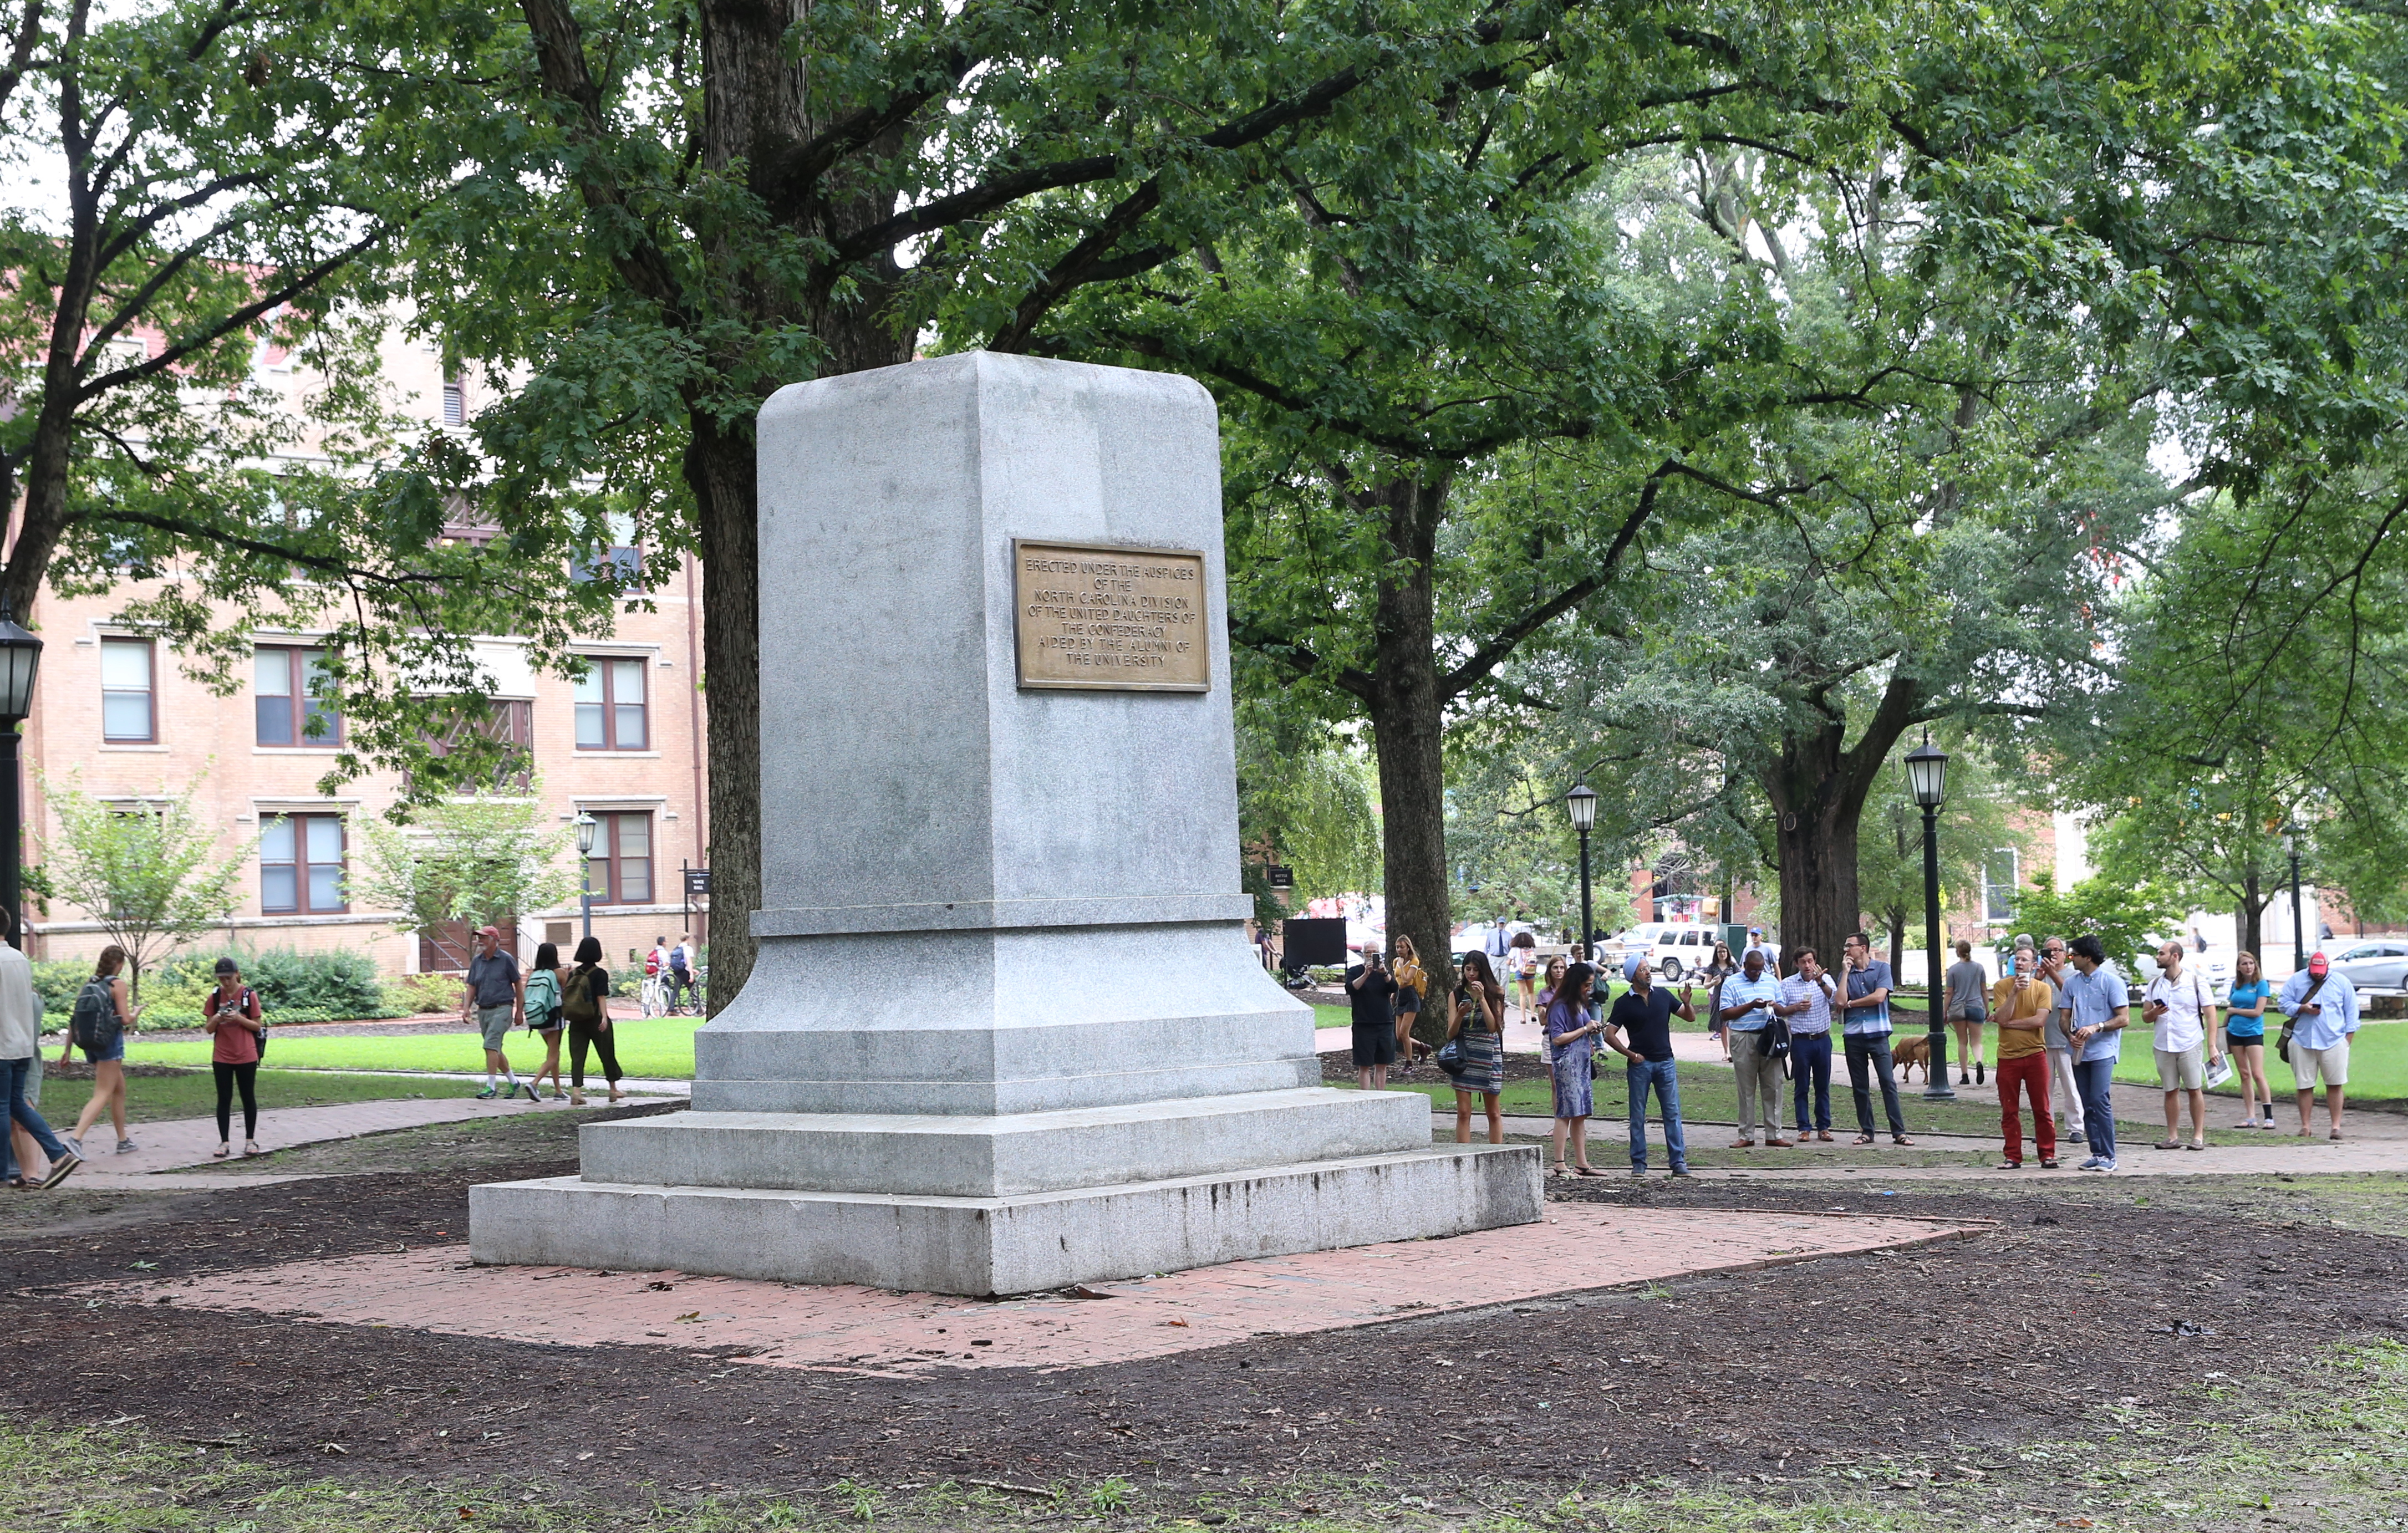 Unc Facing Tough Questions After Fall Of Silent Sam